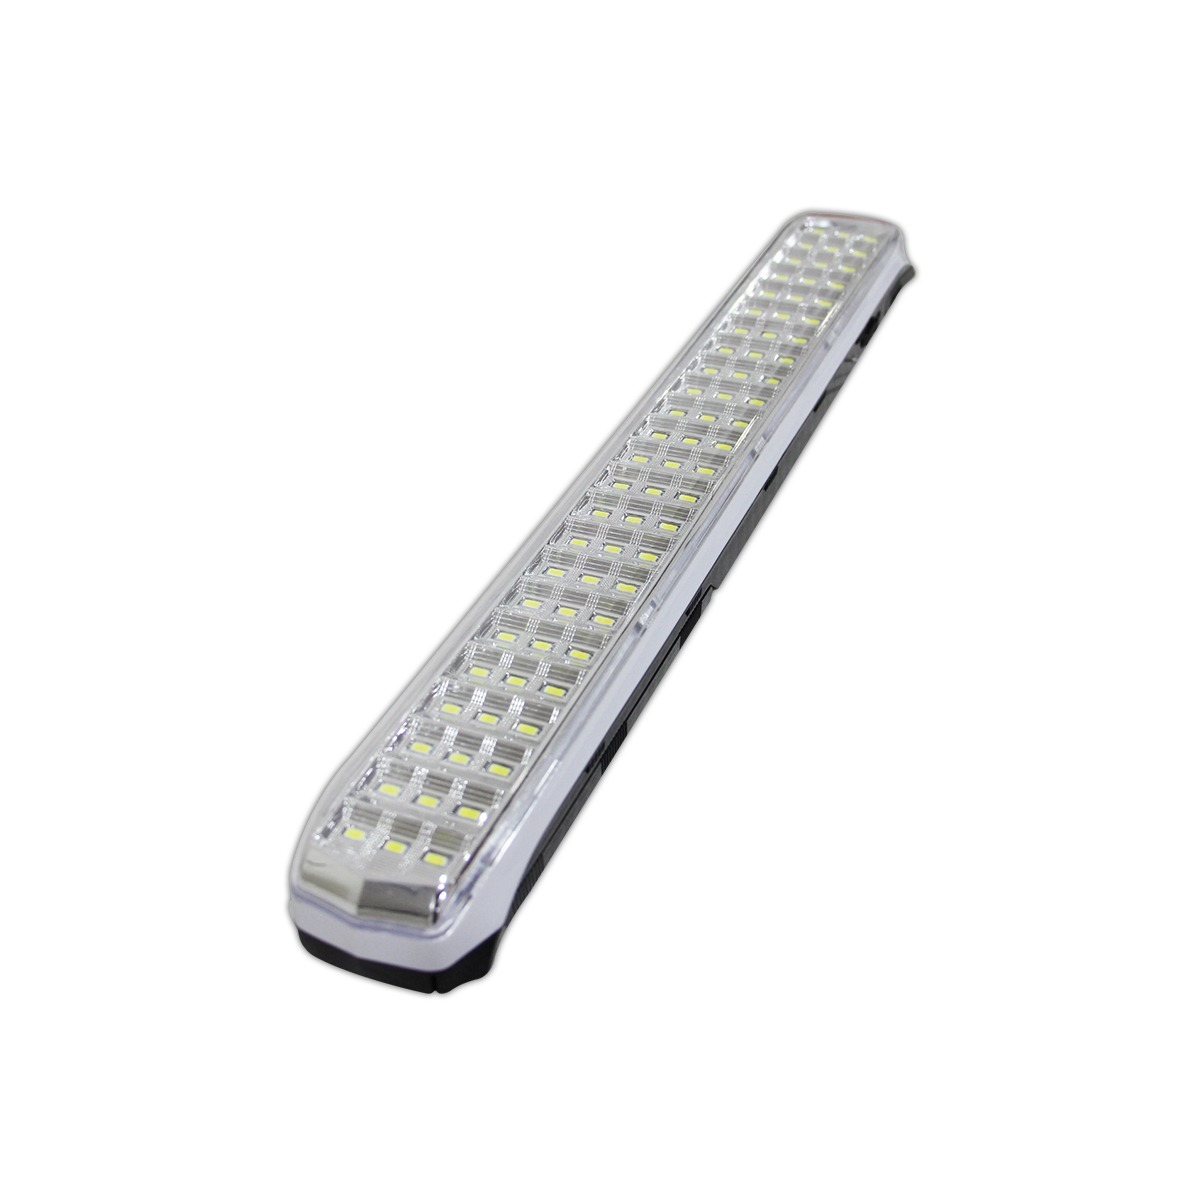 Emergencia Led Lampara Emergencia Led 3w Smd 72 Leds Recargable 48 Cm Jwj